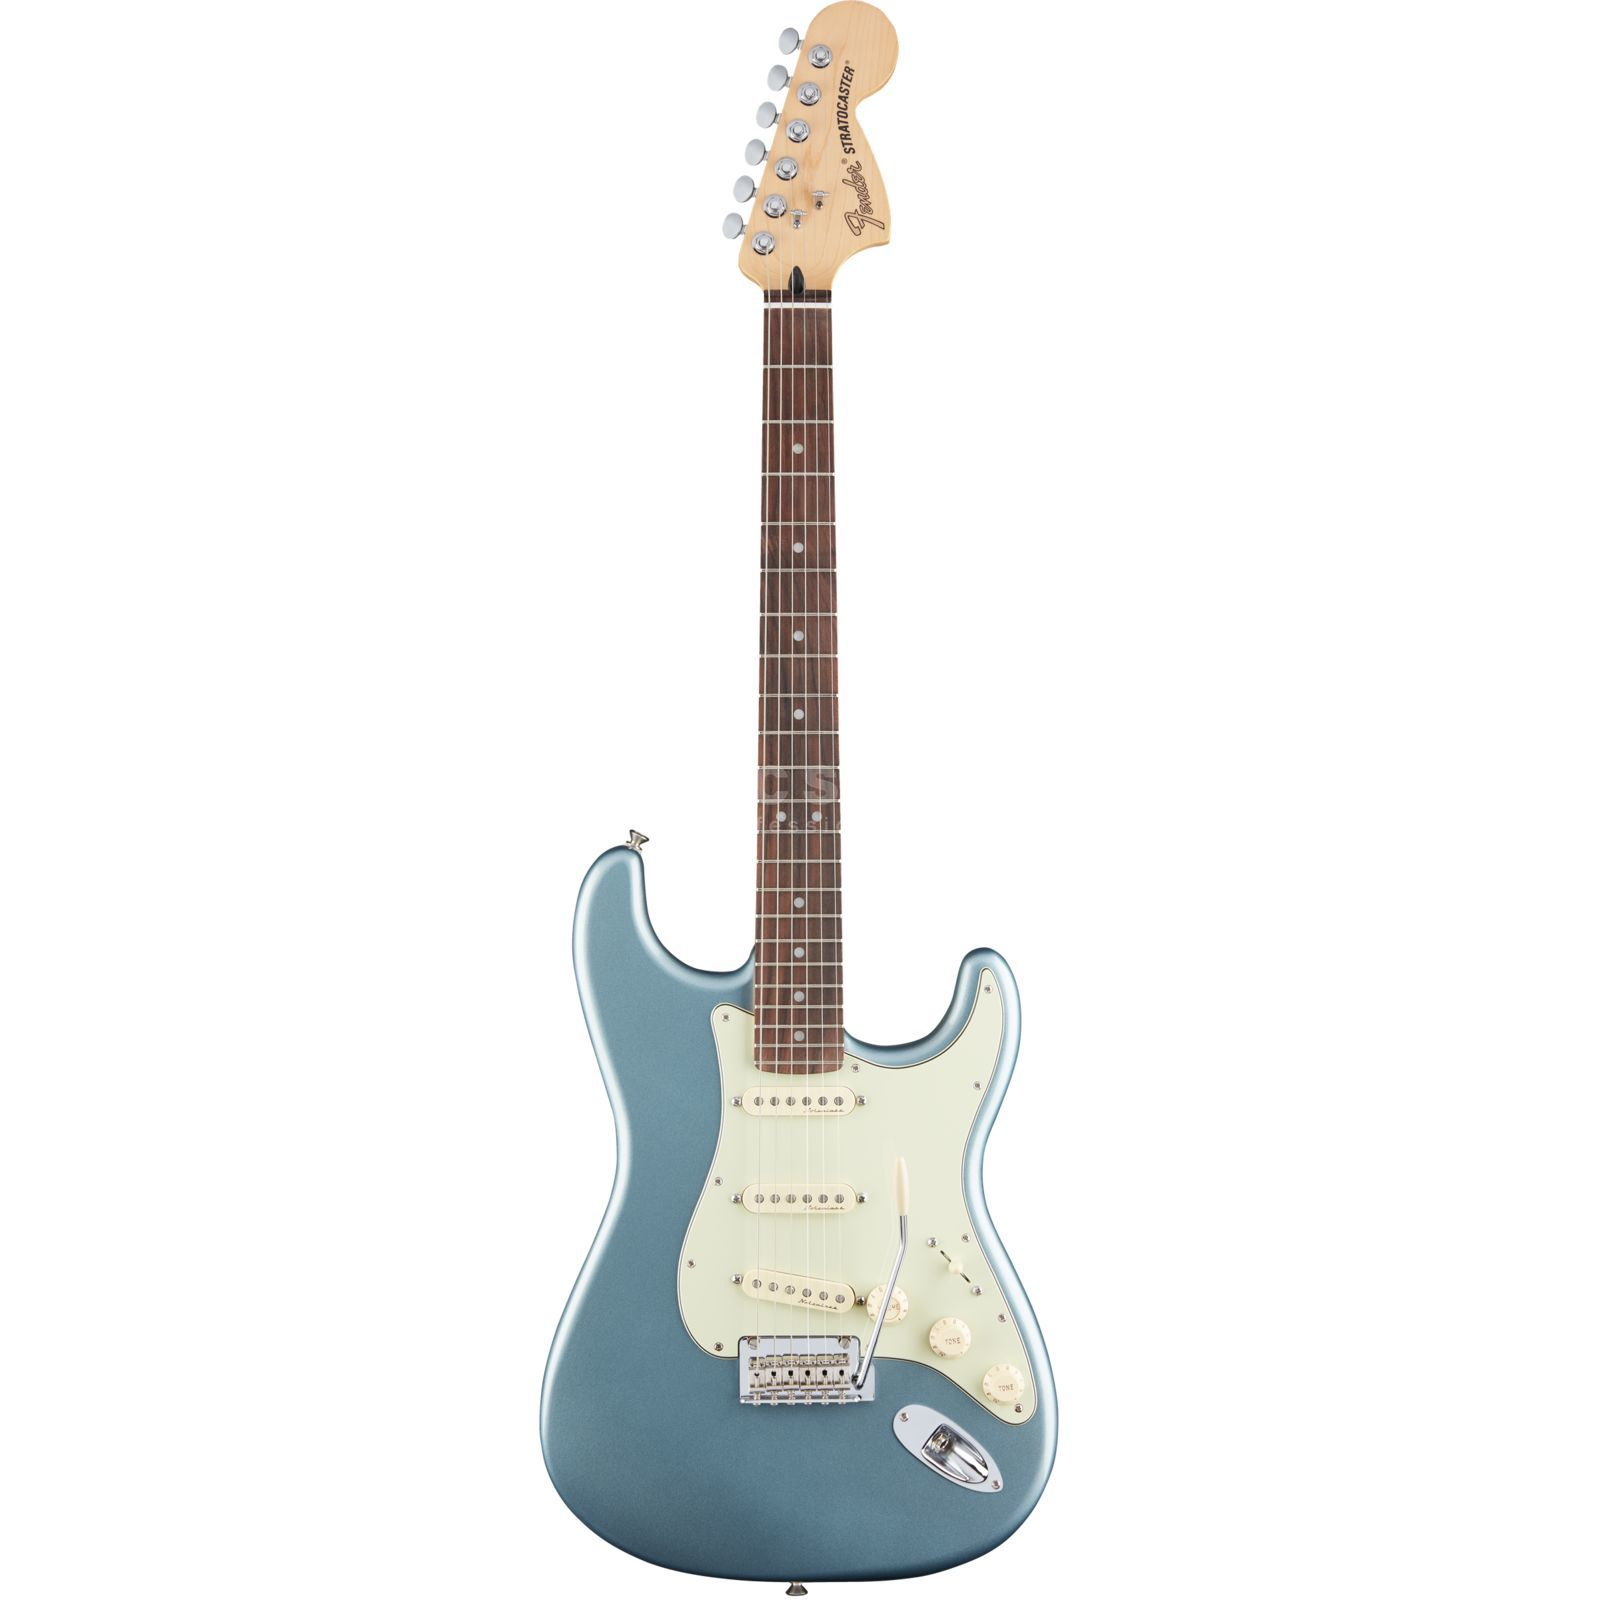 Fender Deluxe Roadhouse Stratocaster RW MIB Mystic Ice Blue Изображение товара